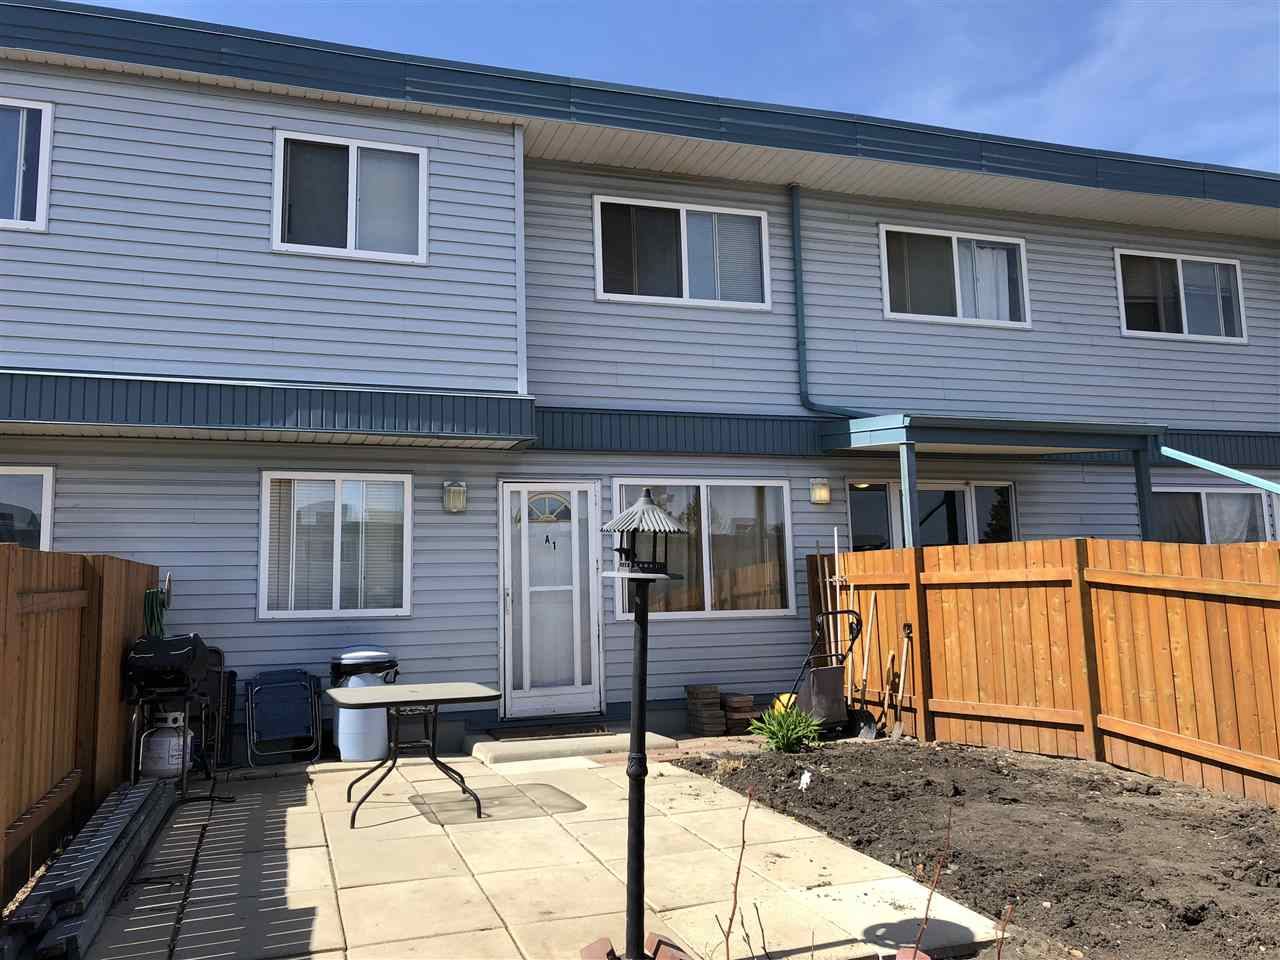 1A 18315 89 Avenue, 3 bed, 2 bath, at $140,000